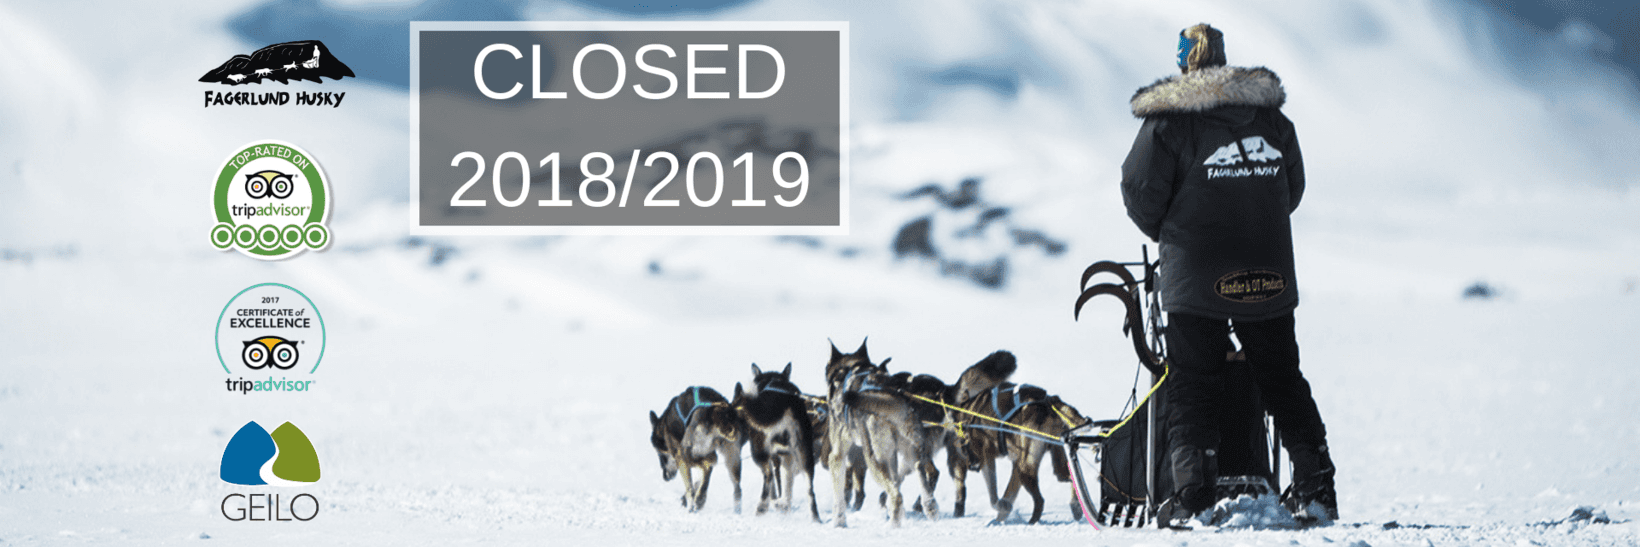 Dog sledding in Geilo - Norway